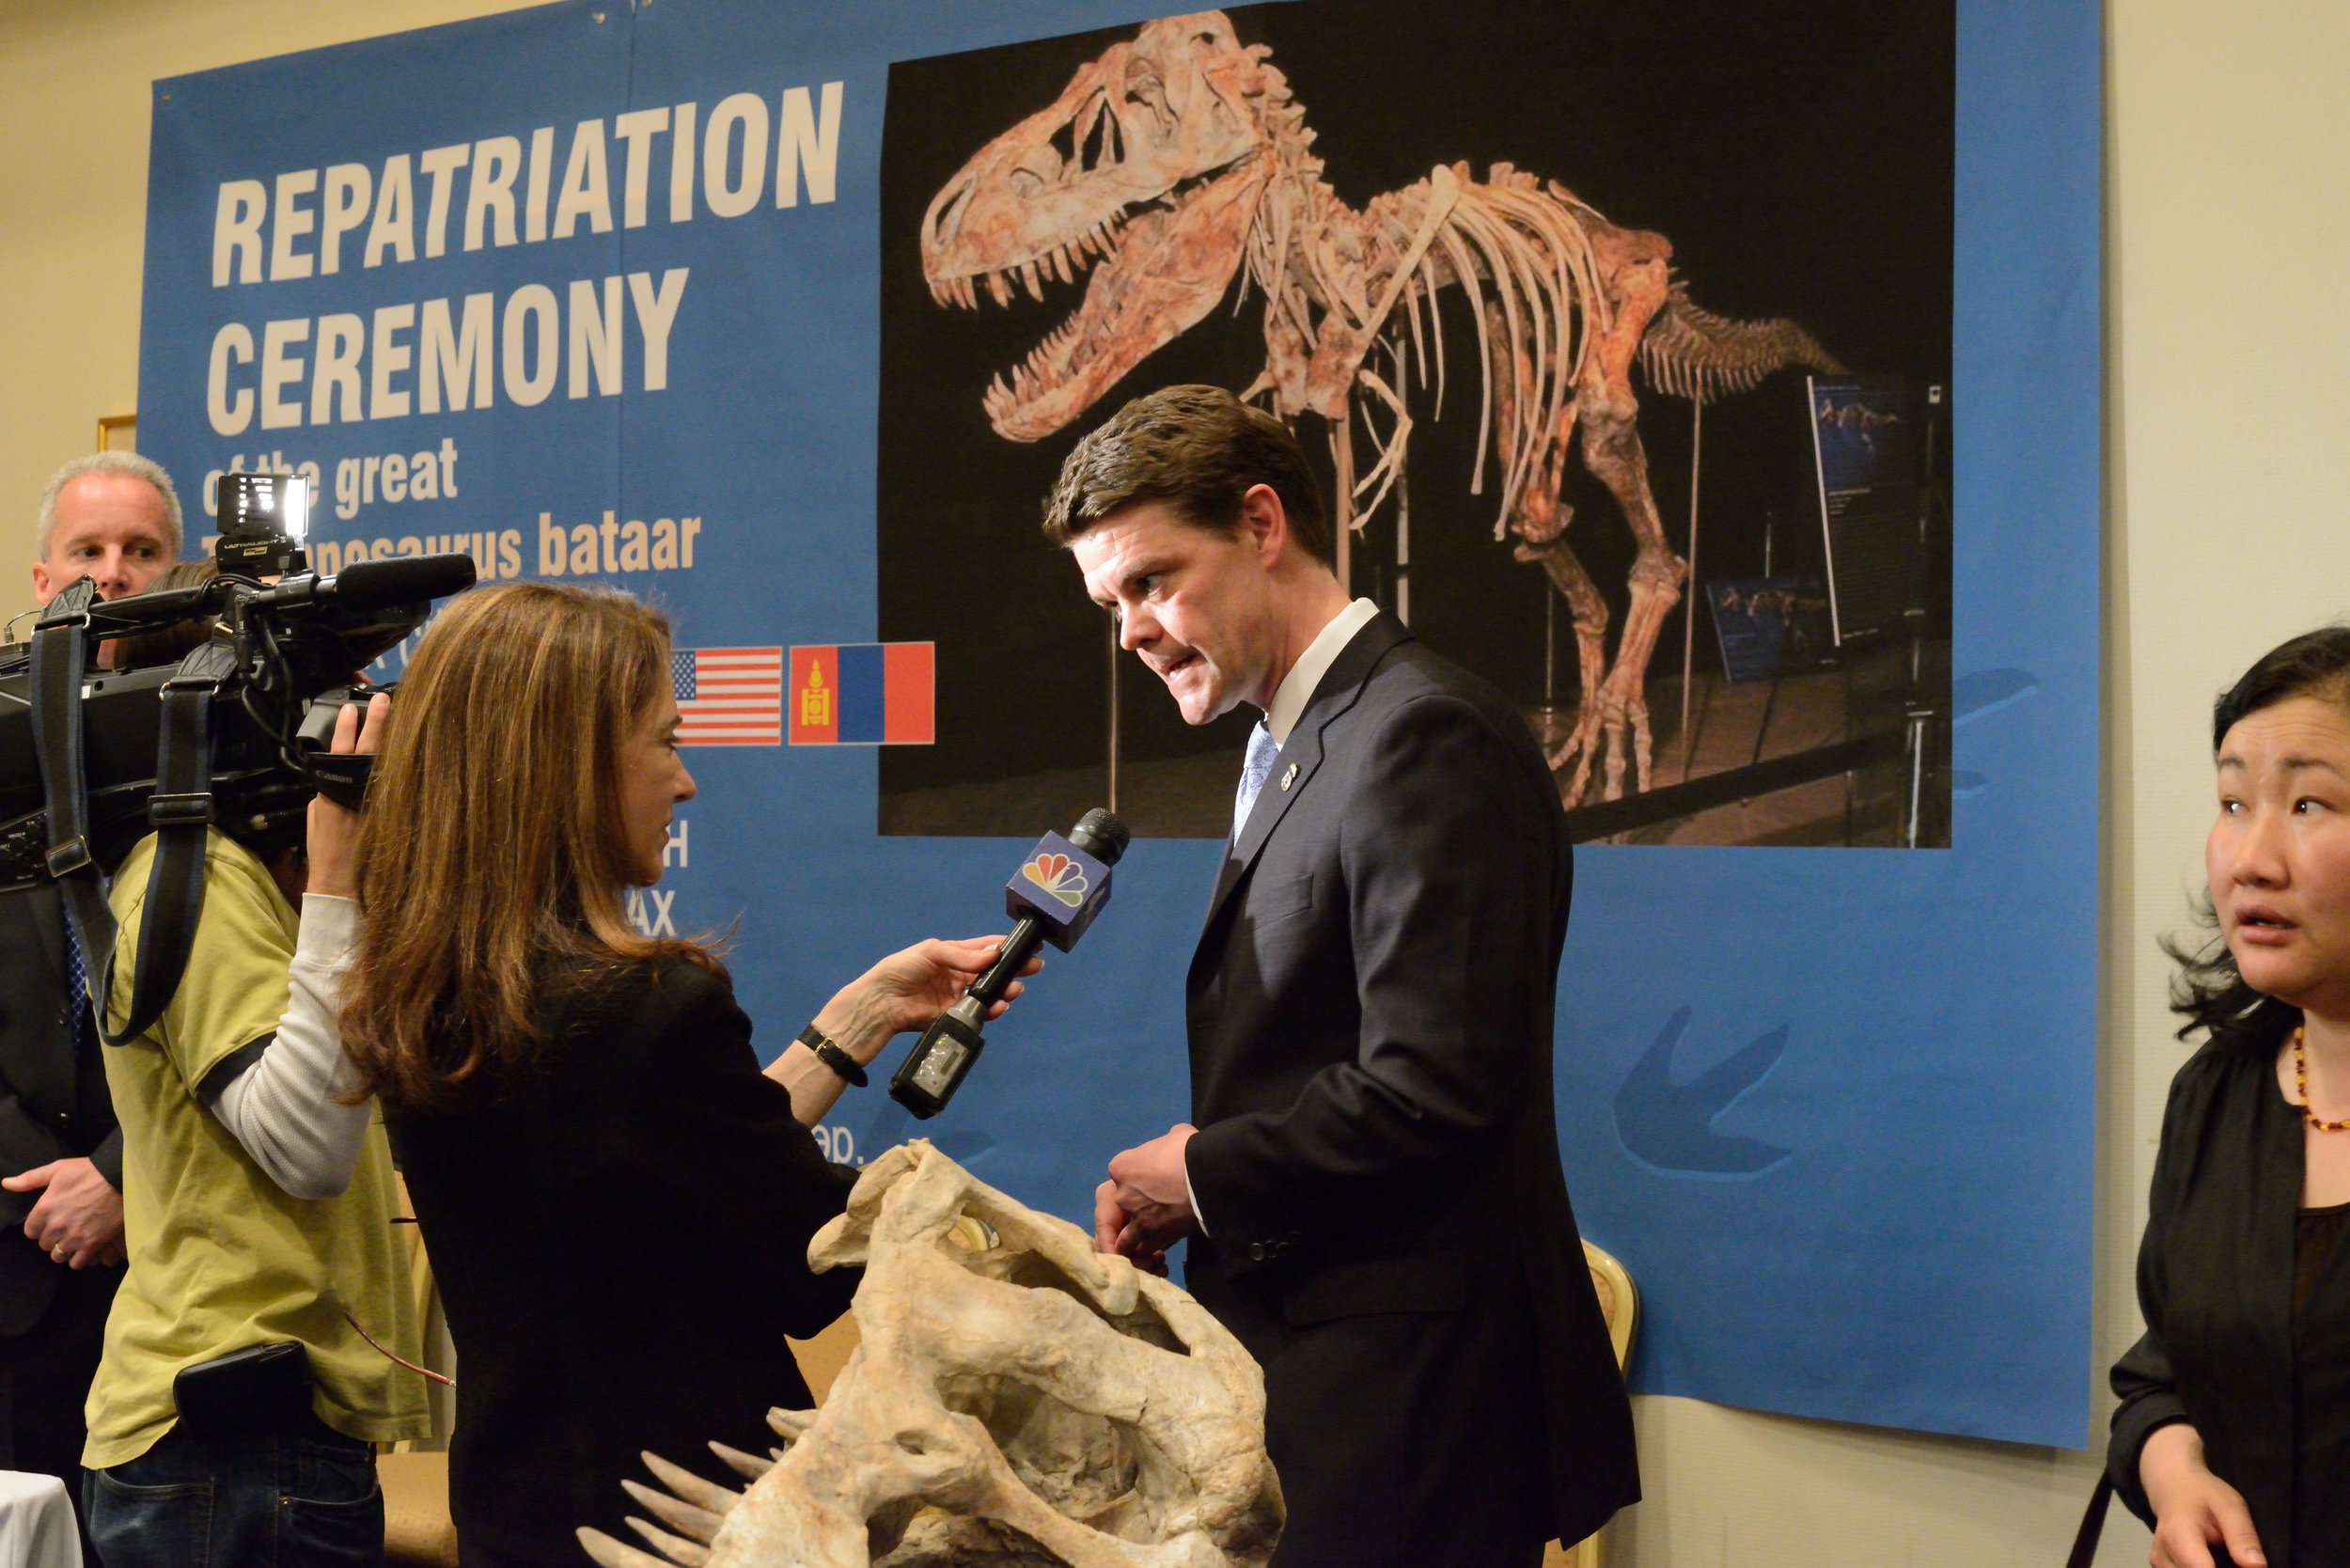 Dinosaur Bones, United Nations Plaza Hotel, Manhattan  At this ceremony the dinosaur bones, which had been illegally poached and marketed, were returned return to Mongolia by the US Department of Homeland Security.  The 80 million year old bones had been delivered to the home of a commercial paleontologist, Eric Prokopi, by the United States Postal Service. He cleaned and assembled the remains and sold the skeleton at auction to a Manhattan real-estate investor wishing to make a show piece for an office building.  The smuggled dinosaur, a Tarbosaurus bataar, was a top of the food chain predator probably preying on other dinosaurs. It now joins Genghis Khan, the brutal conqueror of a vast swathe of Asia and Eurasia as a national hero. The country, which was a Soviet satellite for much of the 20th Century is in the process of converting a museum dedicated to the Soviet leader Vladimir Lenin, the founder of a totalitarian dictatorship responsible for numerous deaths and repressions, into a dinosaur museum.